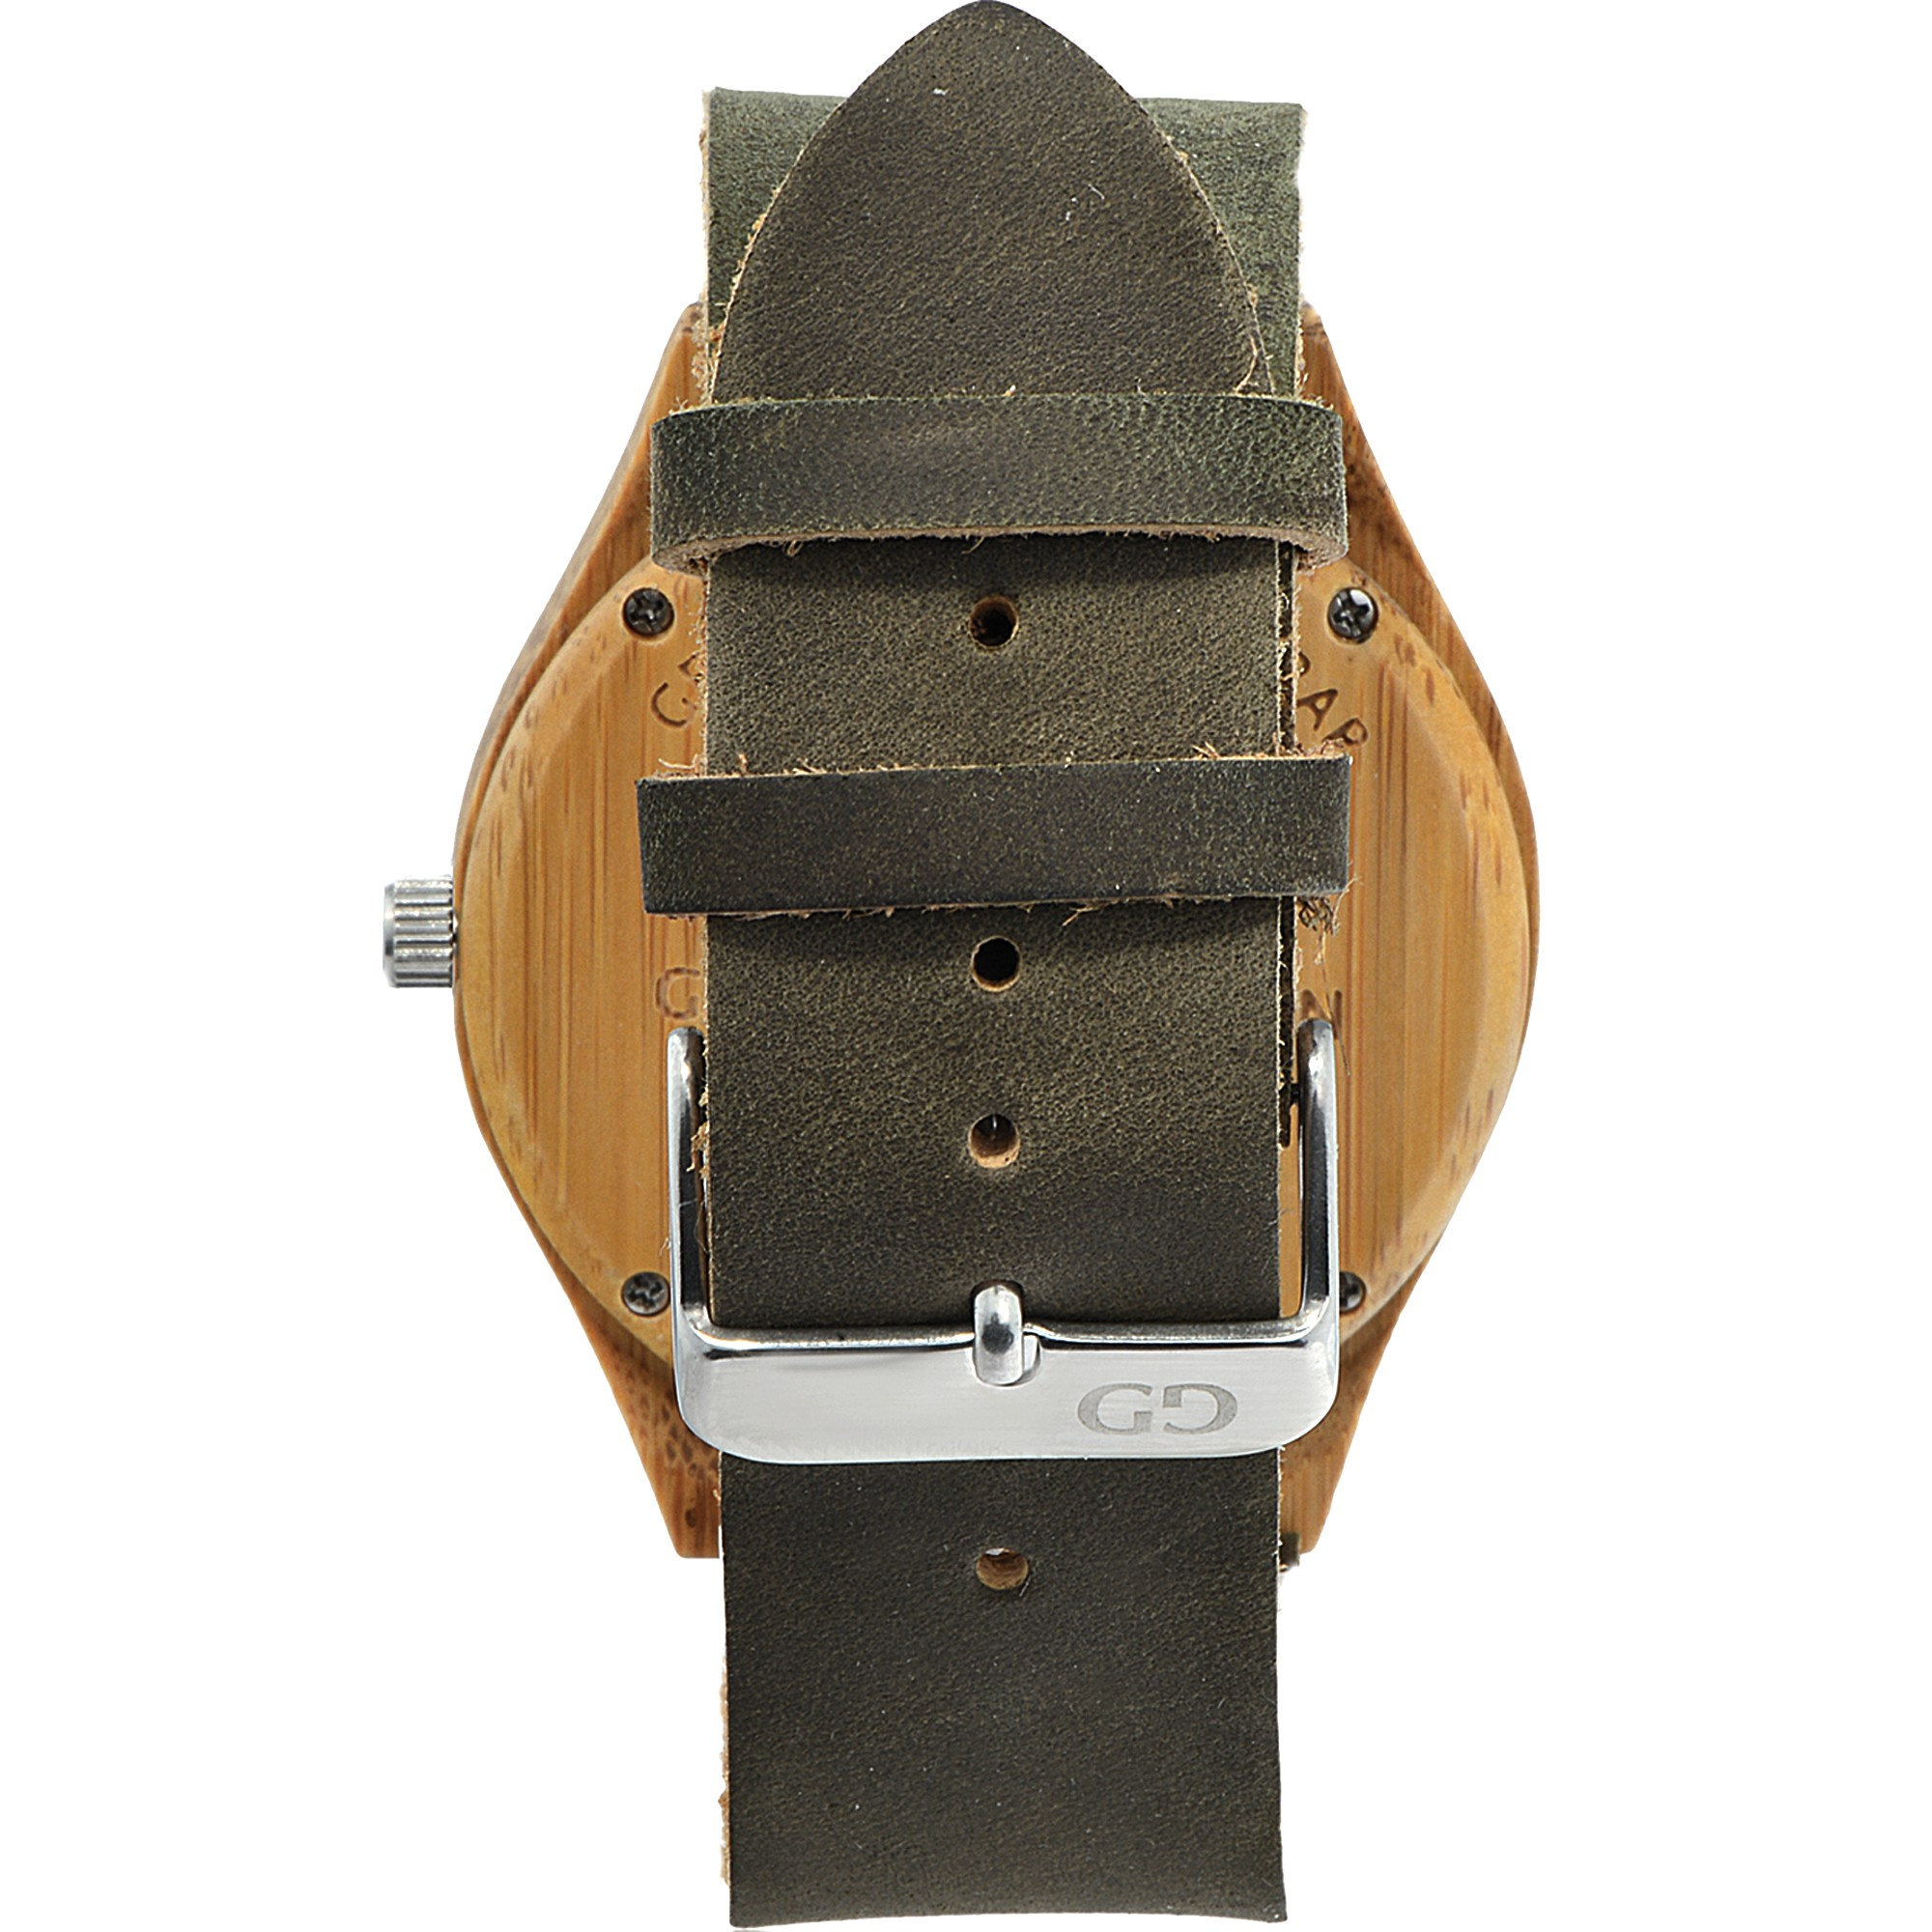 Men's watch Giacomo Design GD08003 bamboo wood leather strap